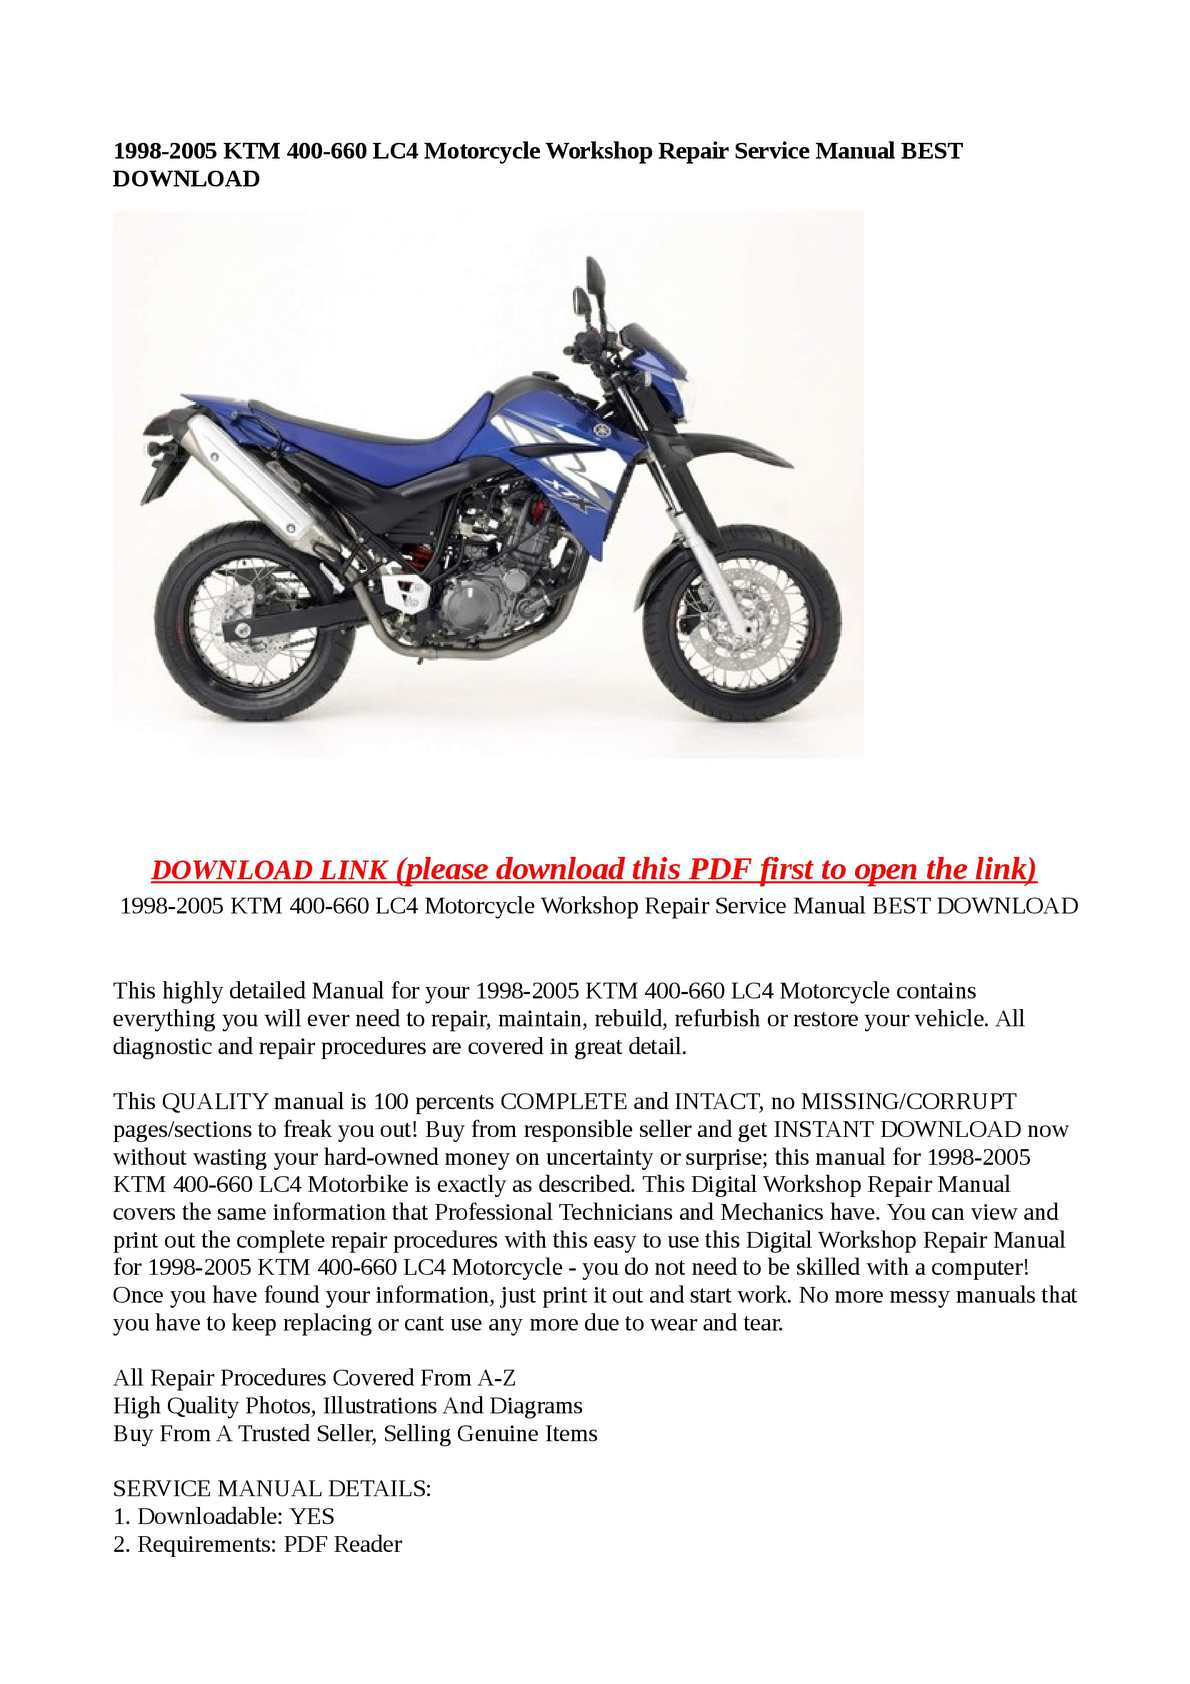 Calaméo - 1998-2005 KTM 400-660 LC4 Motorcycle Workshop Repair Service  Manual BEST DOWNLOAD